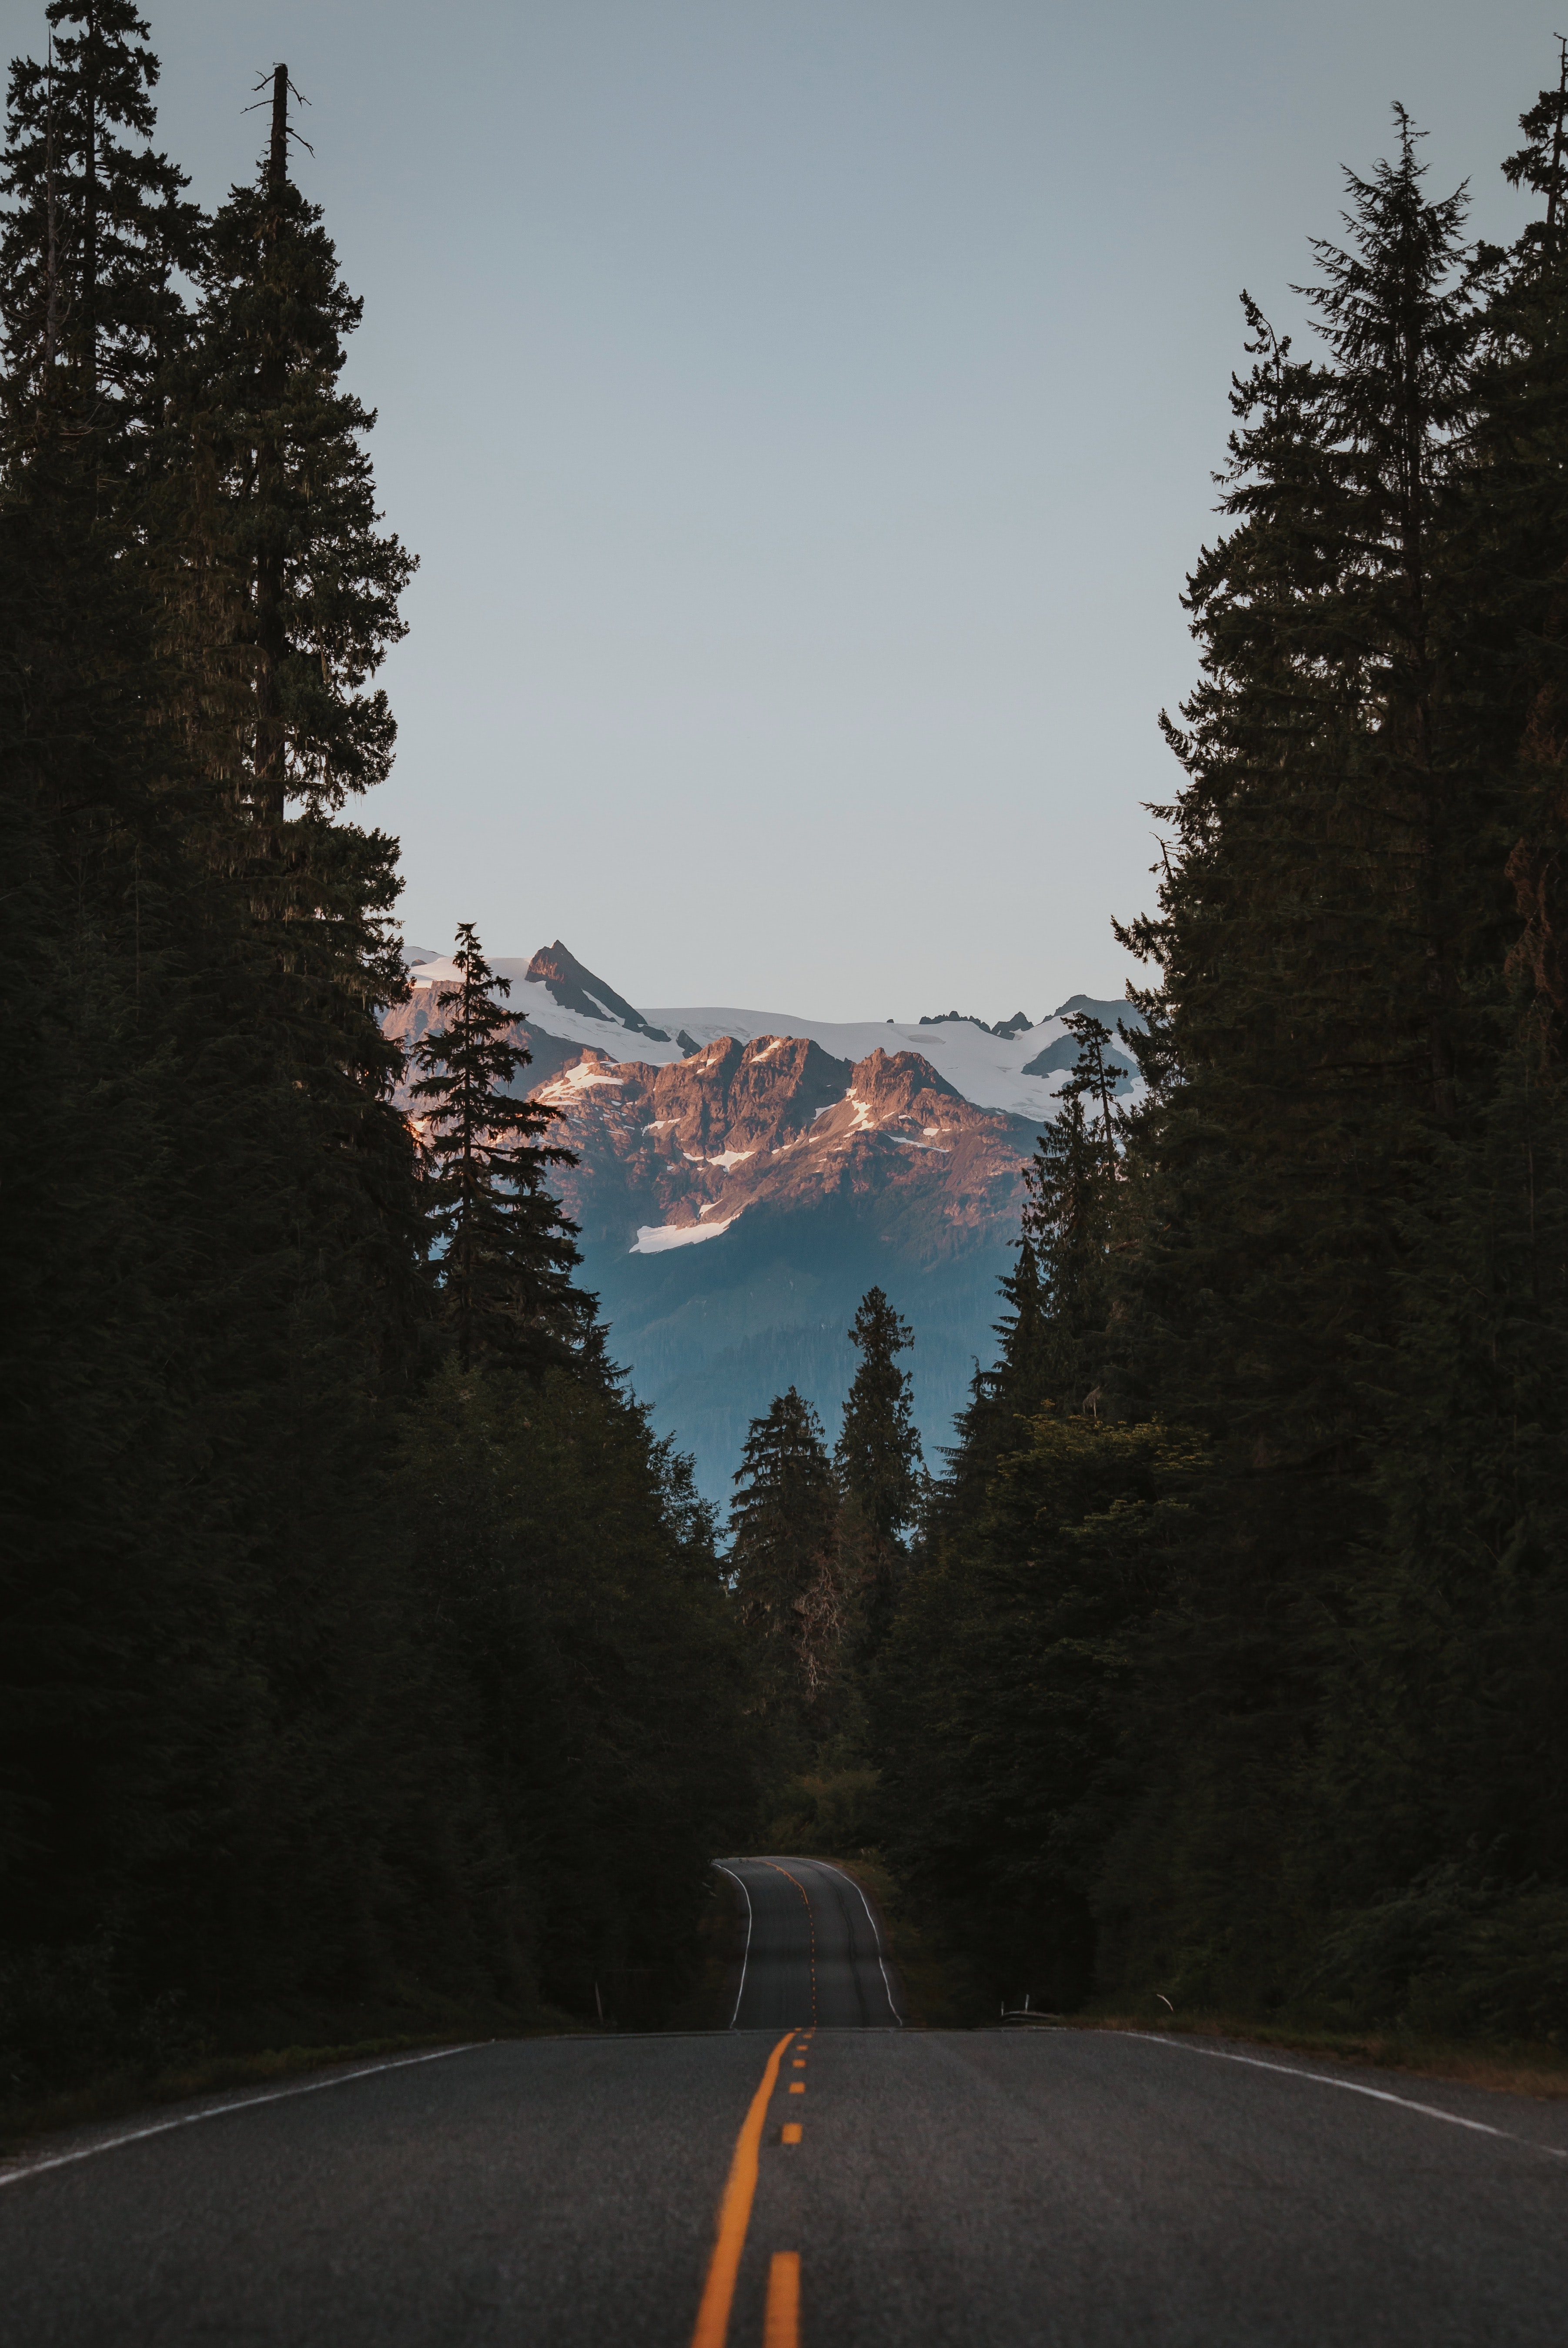 landscape photography of mountains, trees, and road